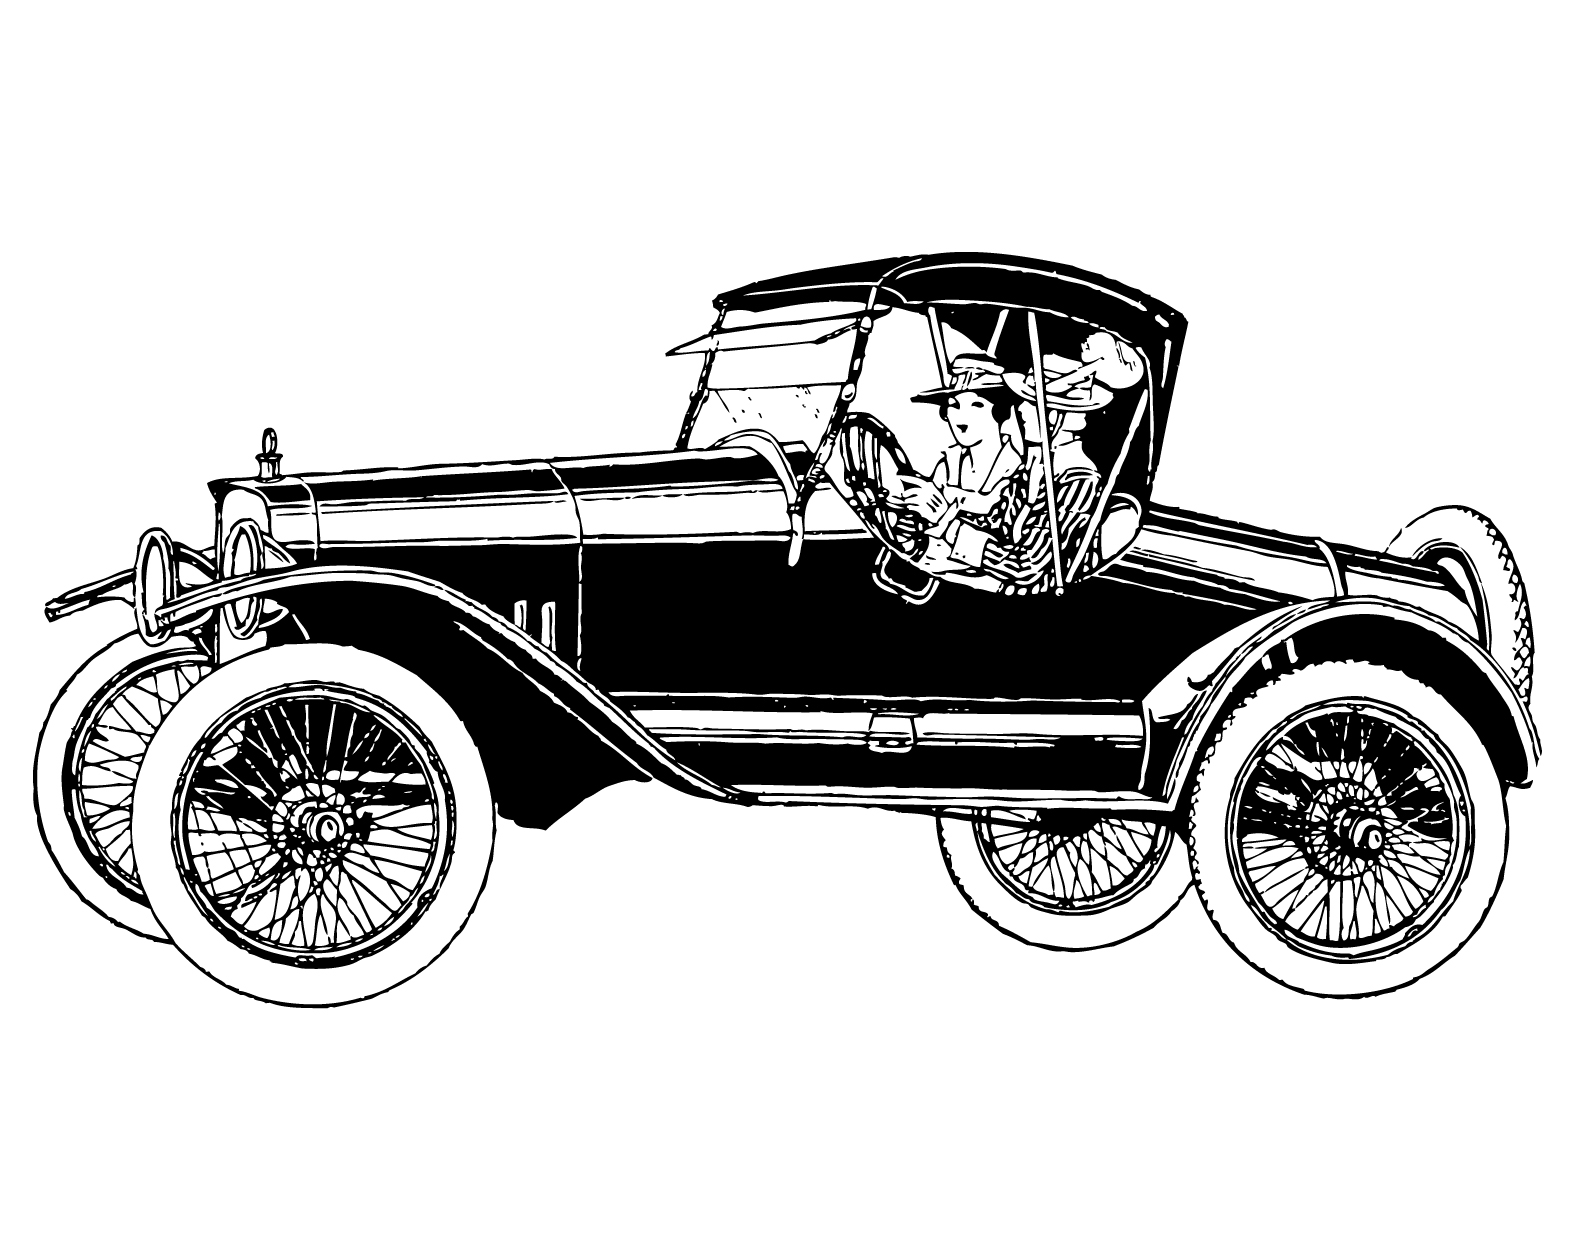 Vintage car signs clipart svg black and white Free Antique Sign Cliparts, Download Free Clip Art, Free ... svg black and white